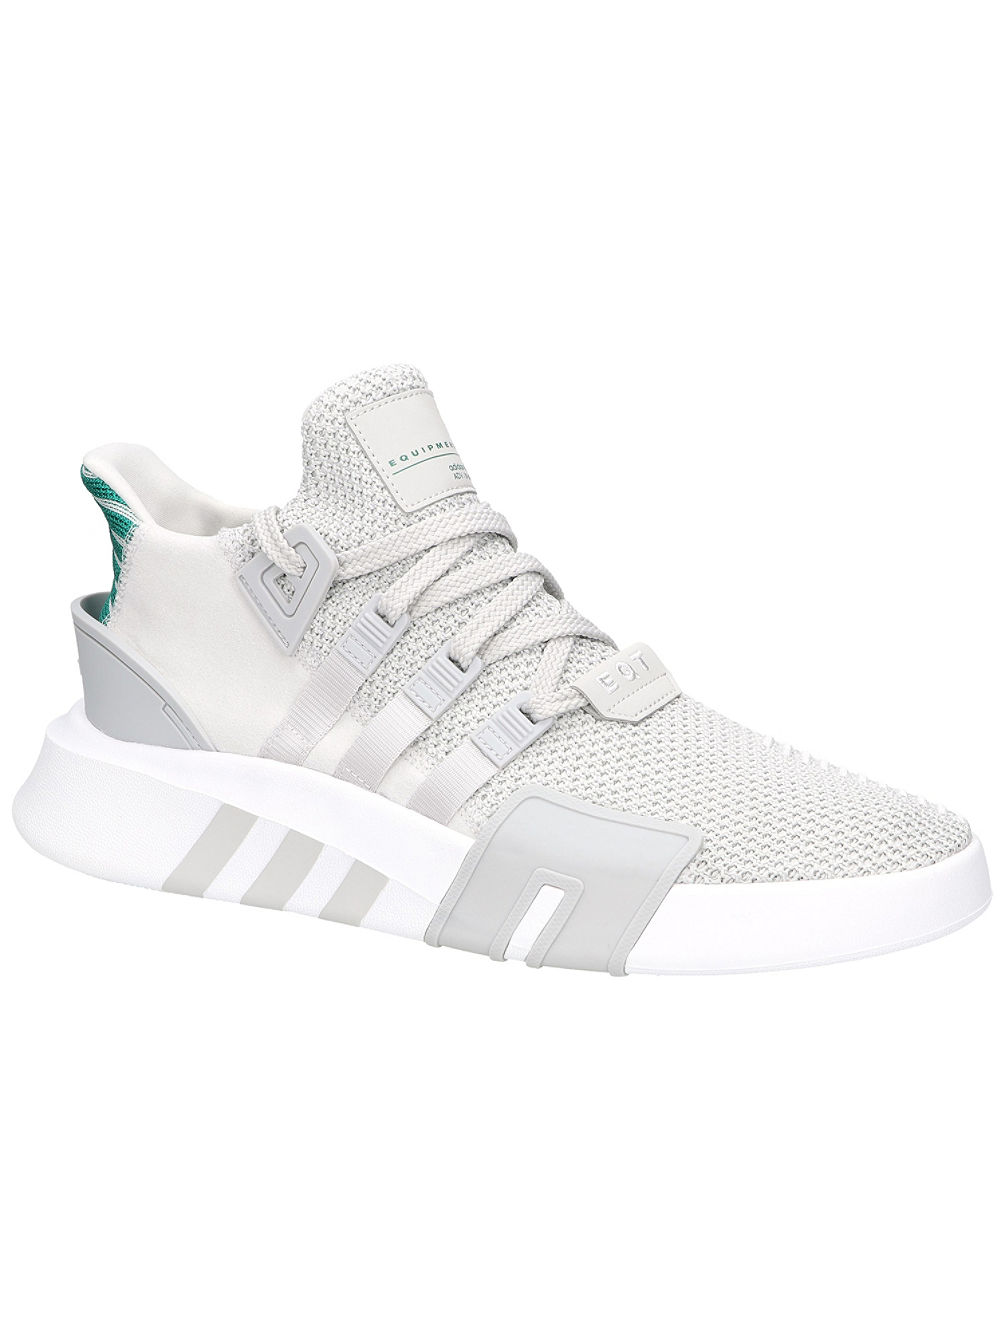 EQT Bask ADV Sneakers